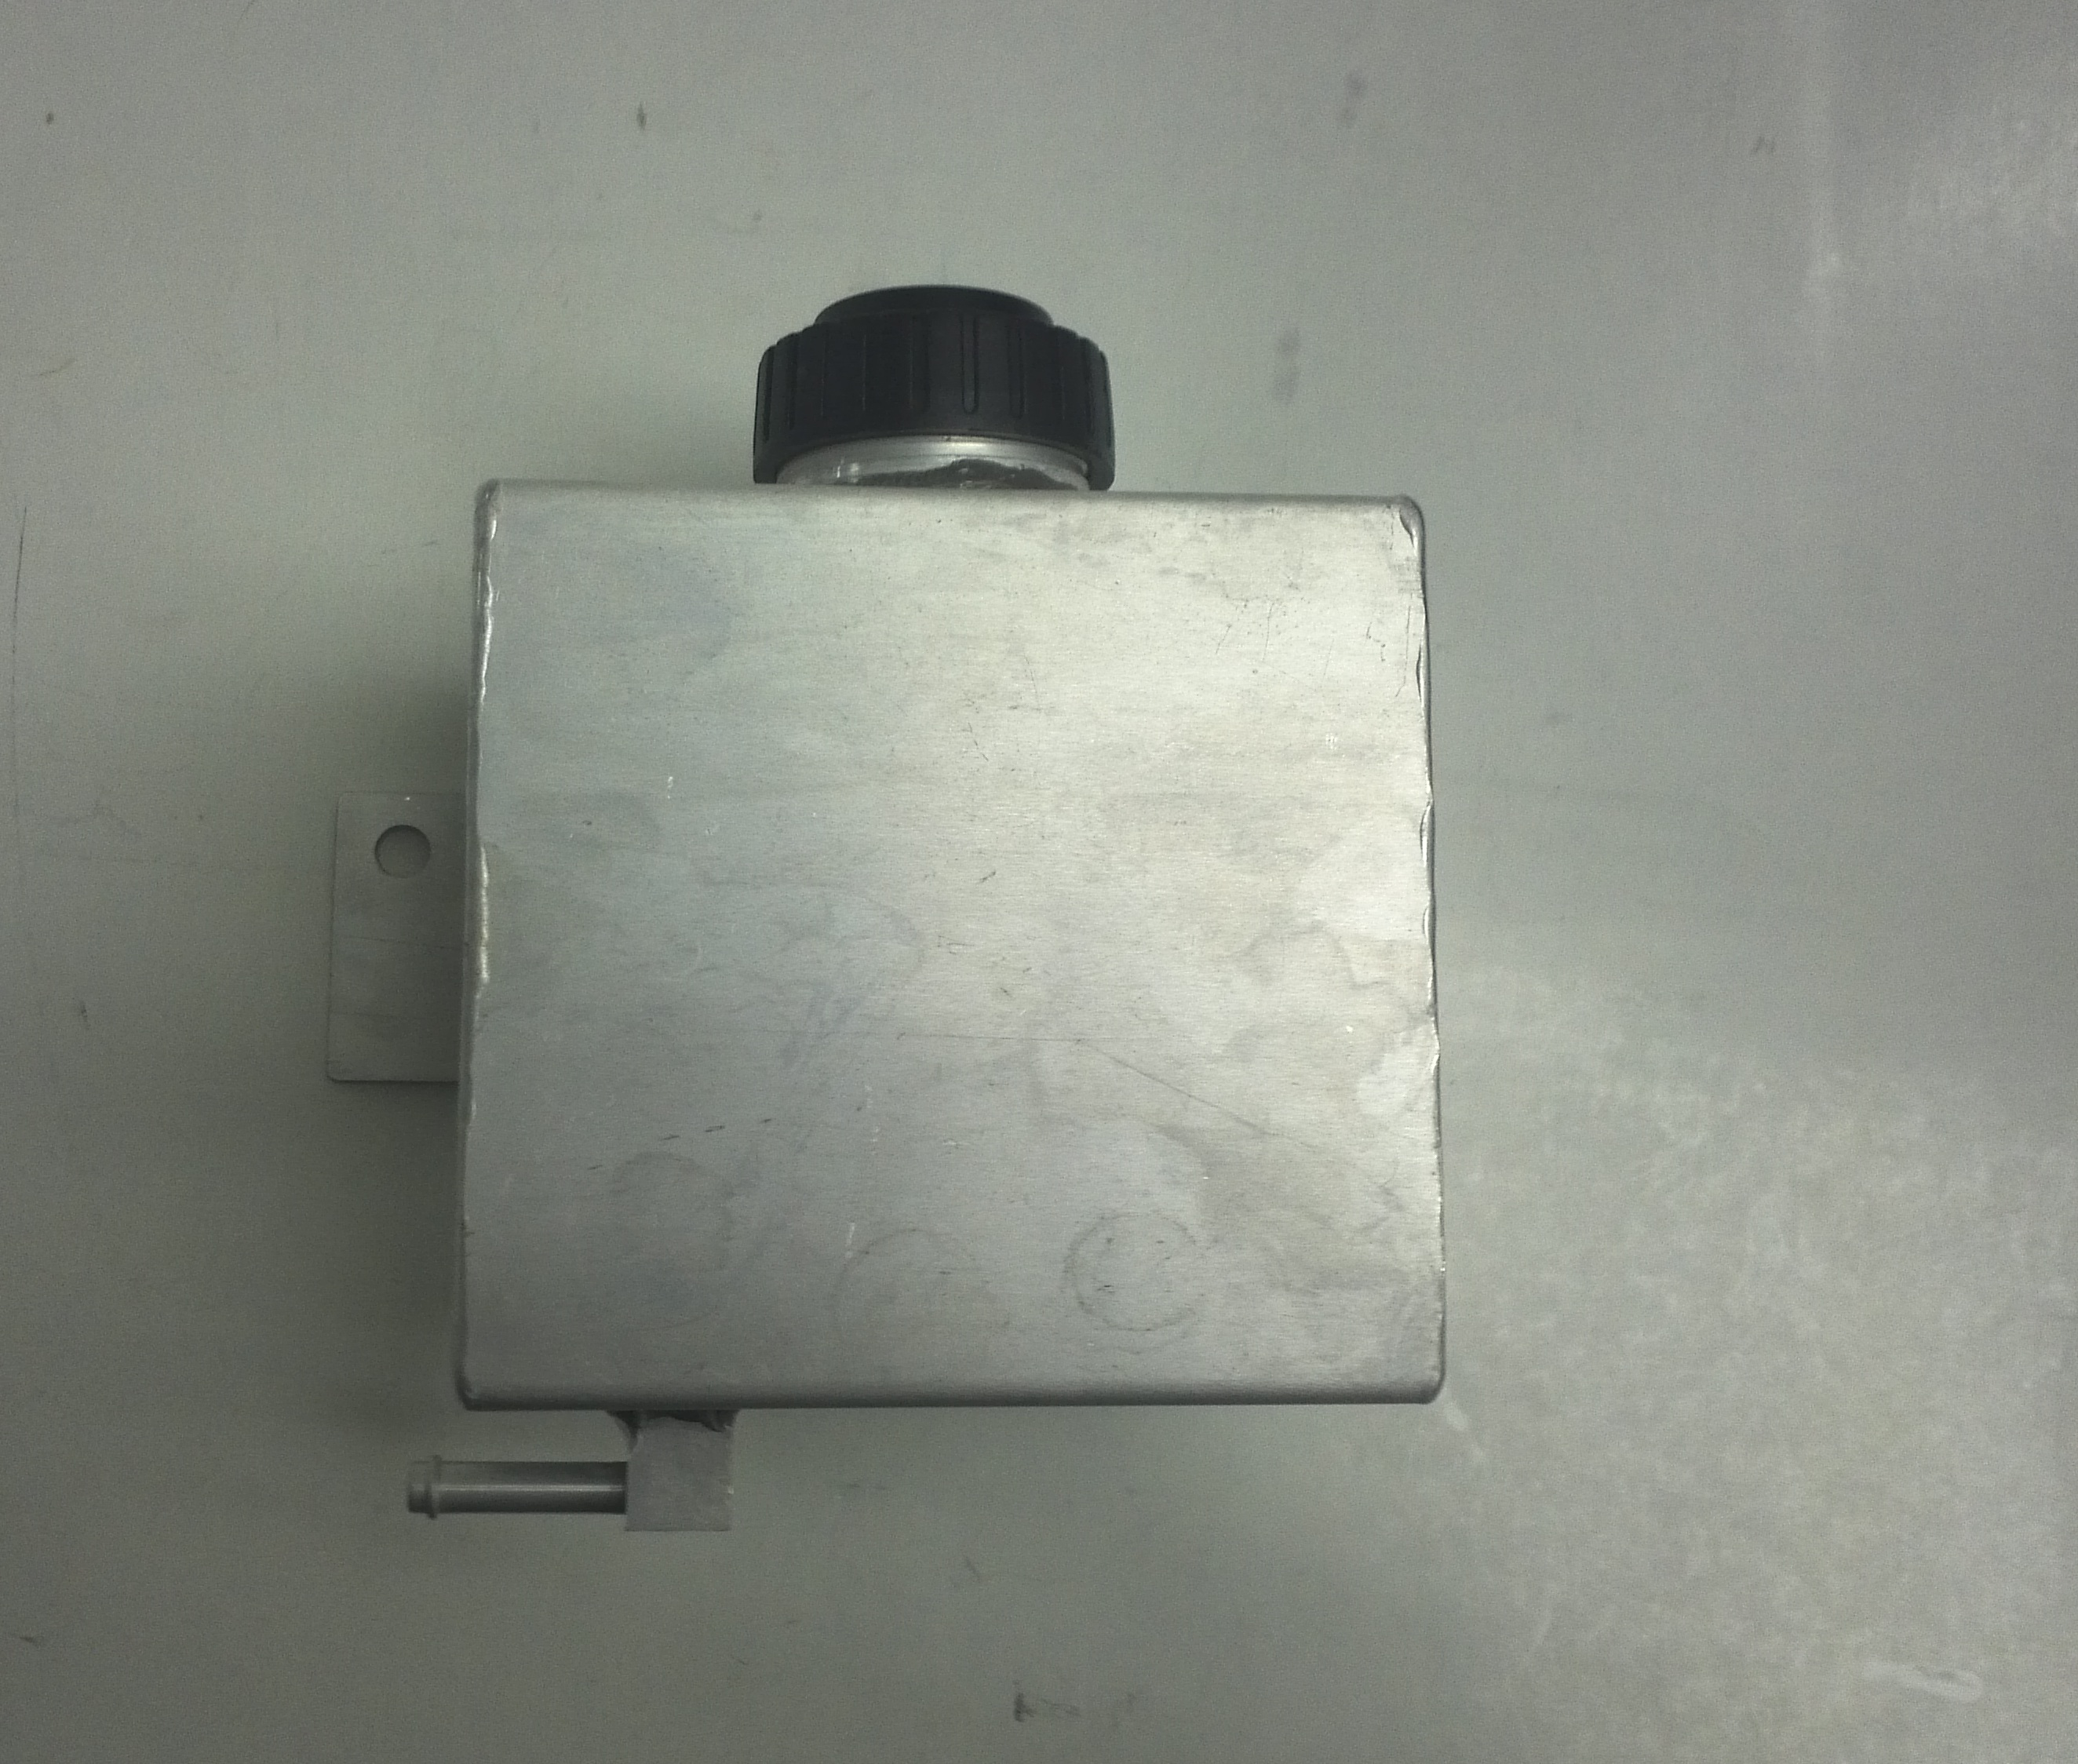 Rigmaster Part Number RP5-1008